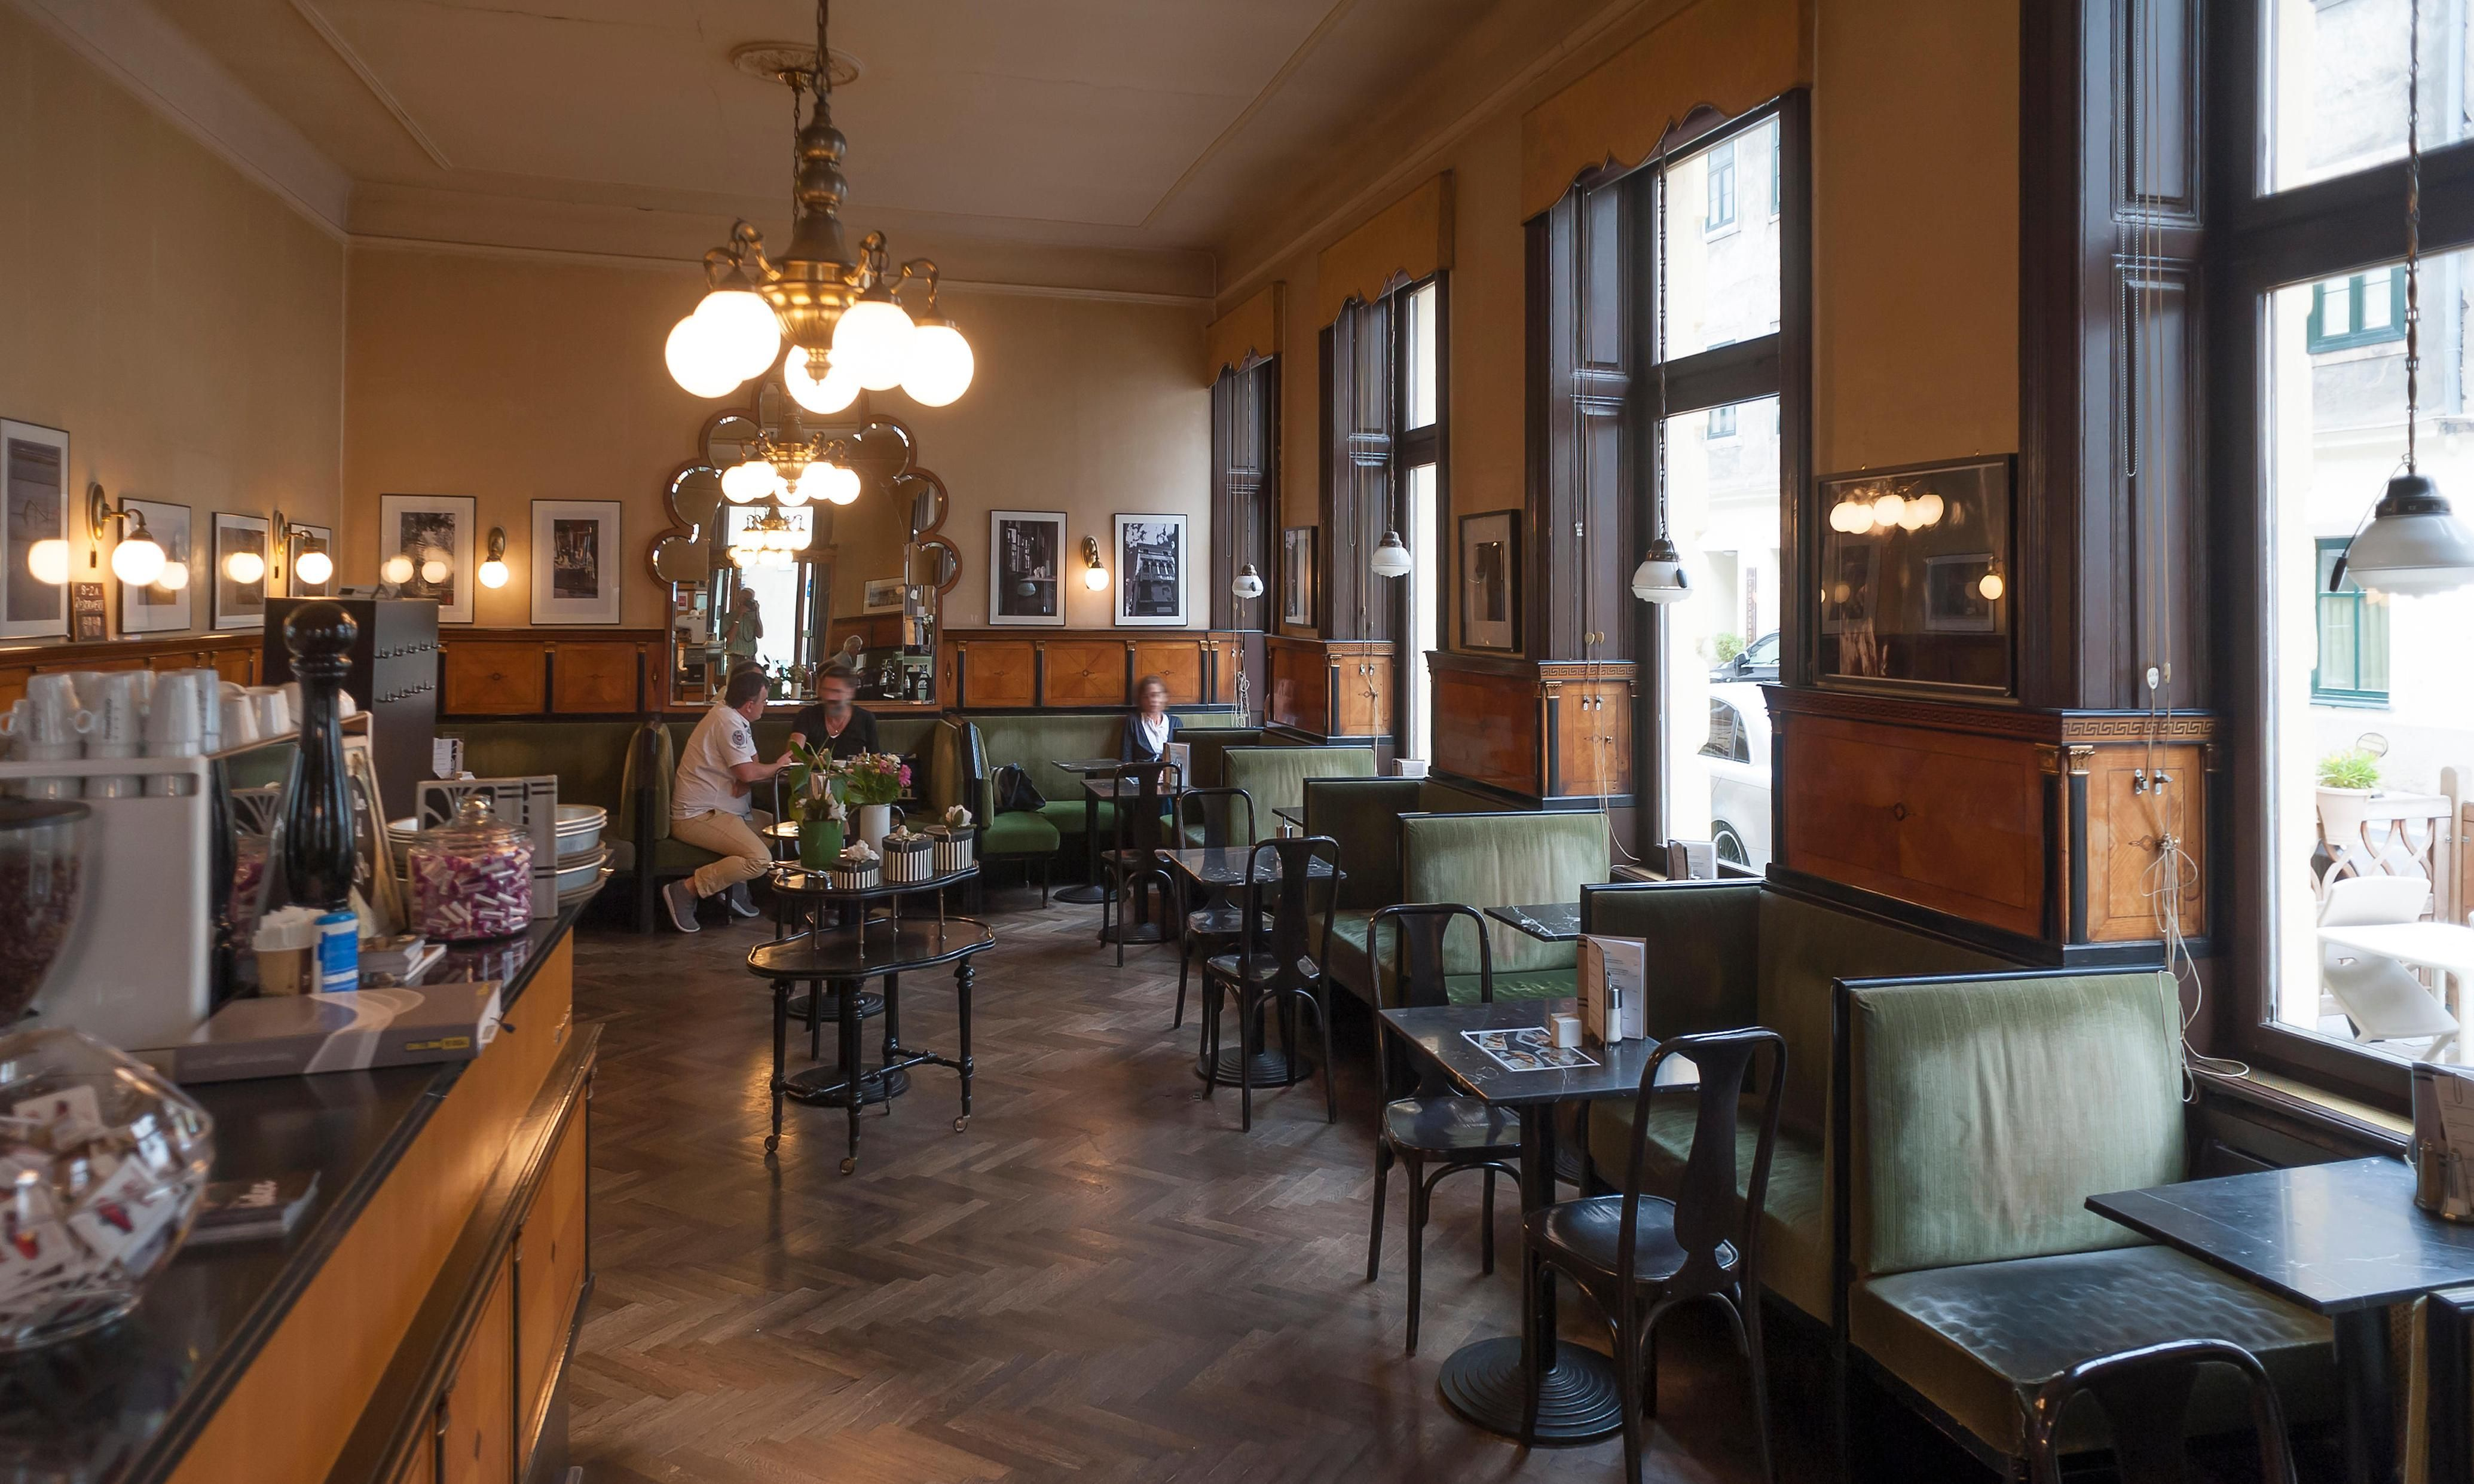 10 Of The Best Restaurants And Cafes Near Europe S Main Railway Stations In 2020 Restaurant Cafe Cafe Restaurant